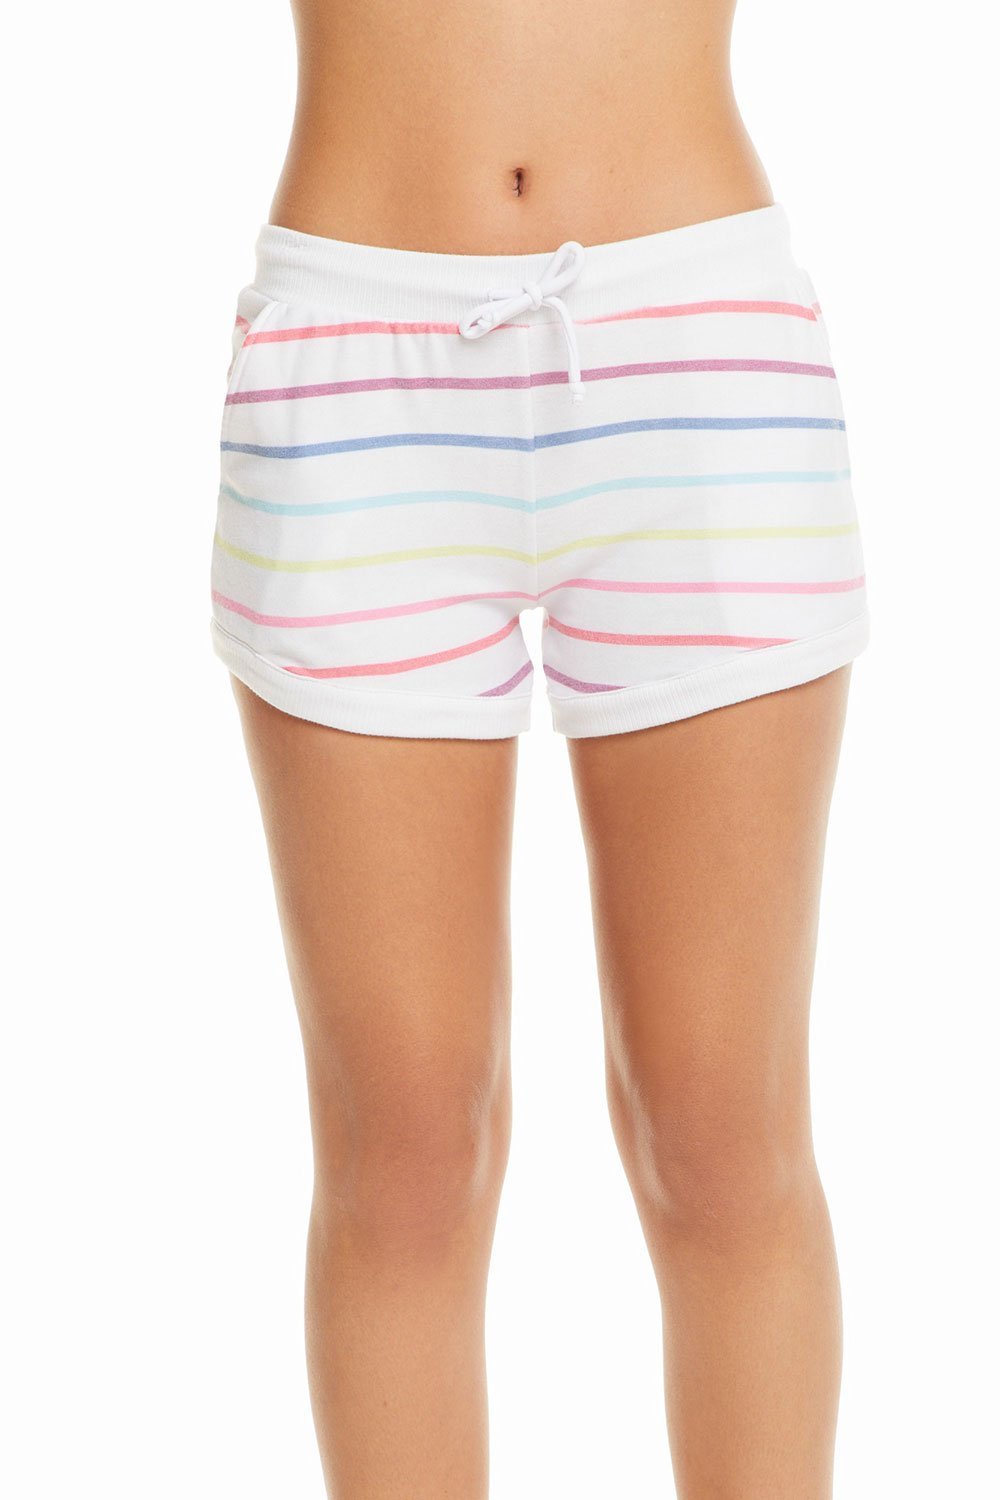 Chaser Cozy Knit Drawstring Lounge Short